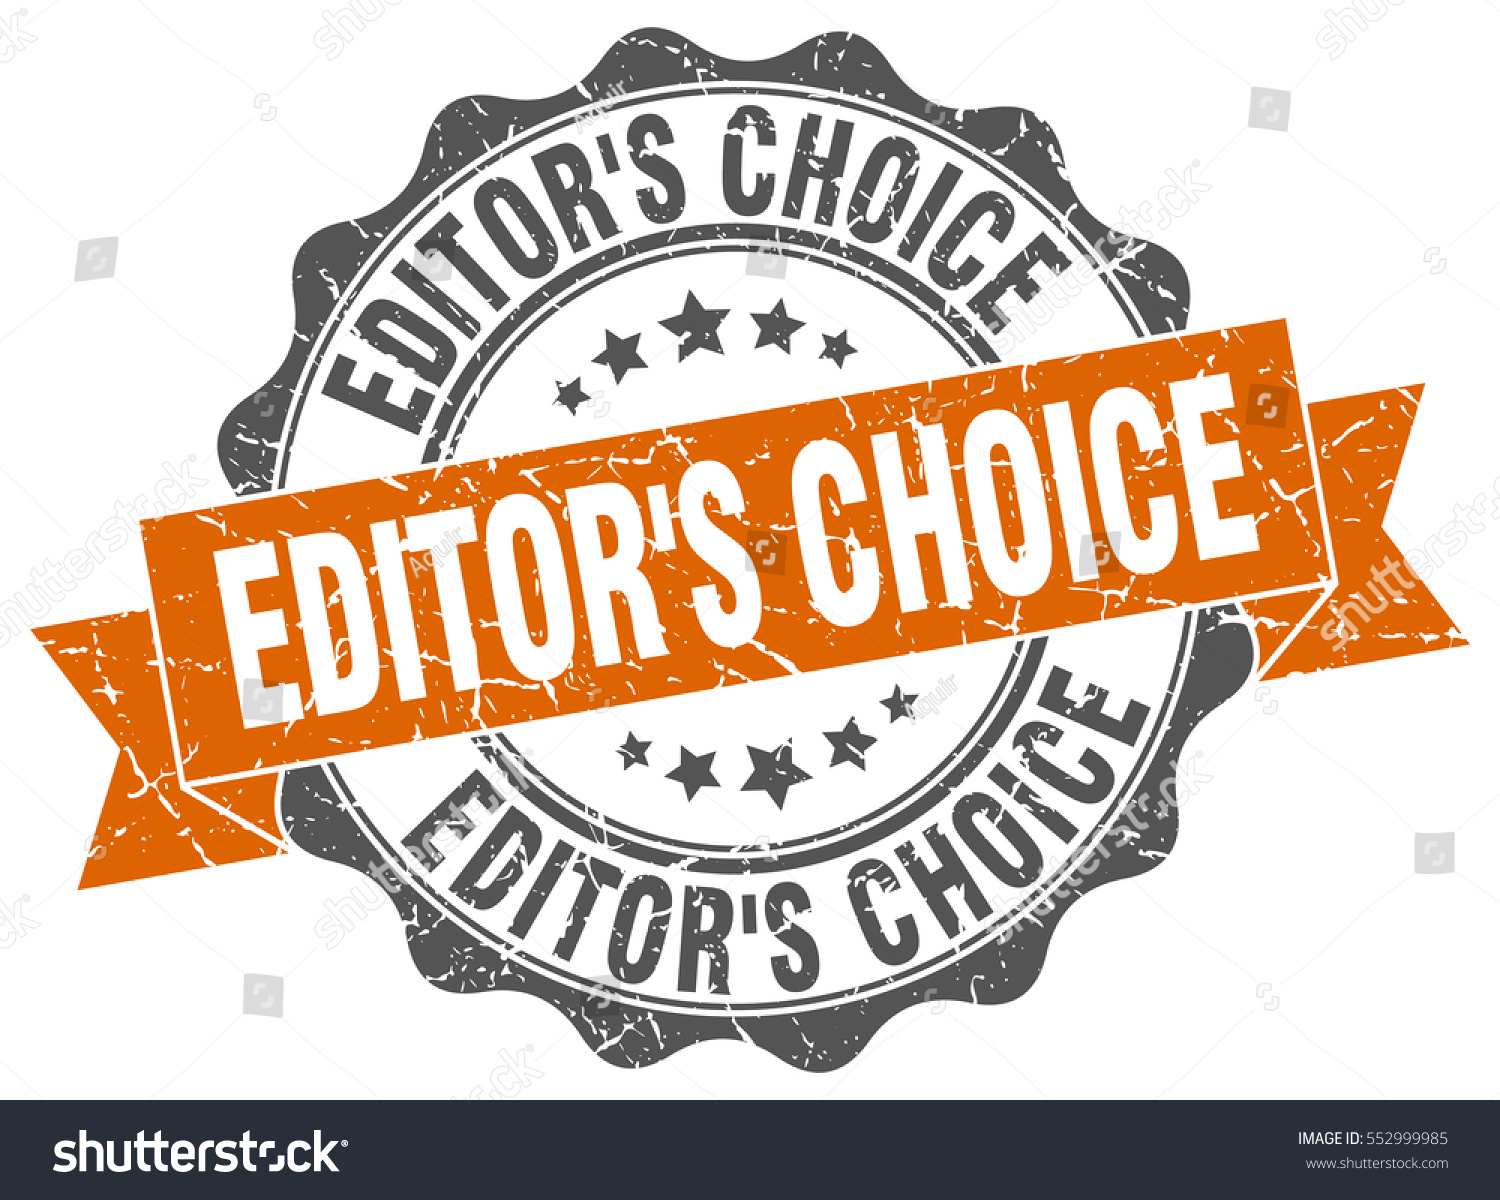 Editors choice stamp sticker seal round grunge vintage ribbon editors choice sign